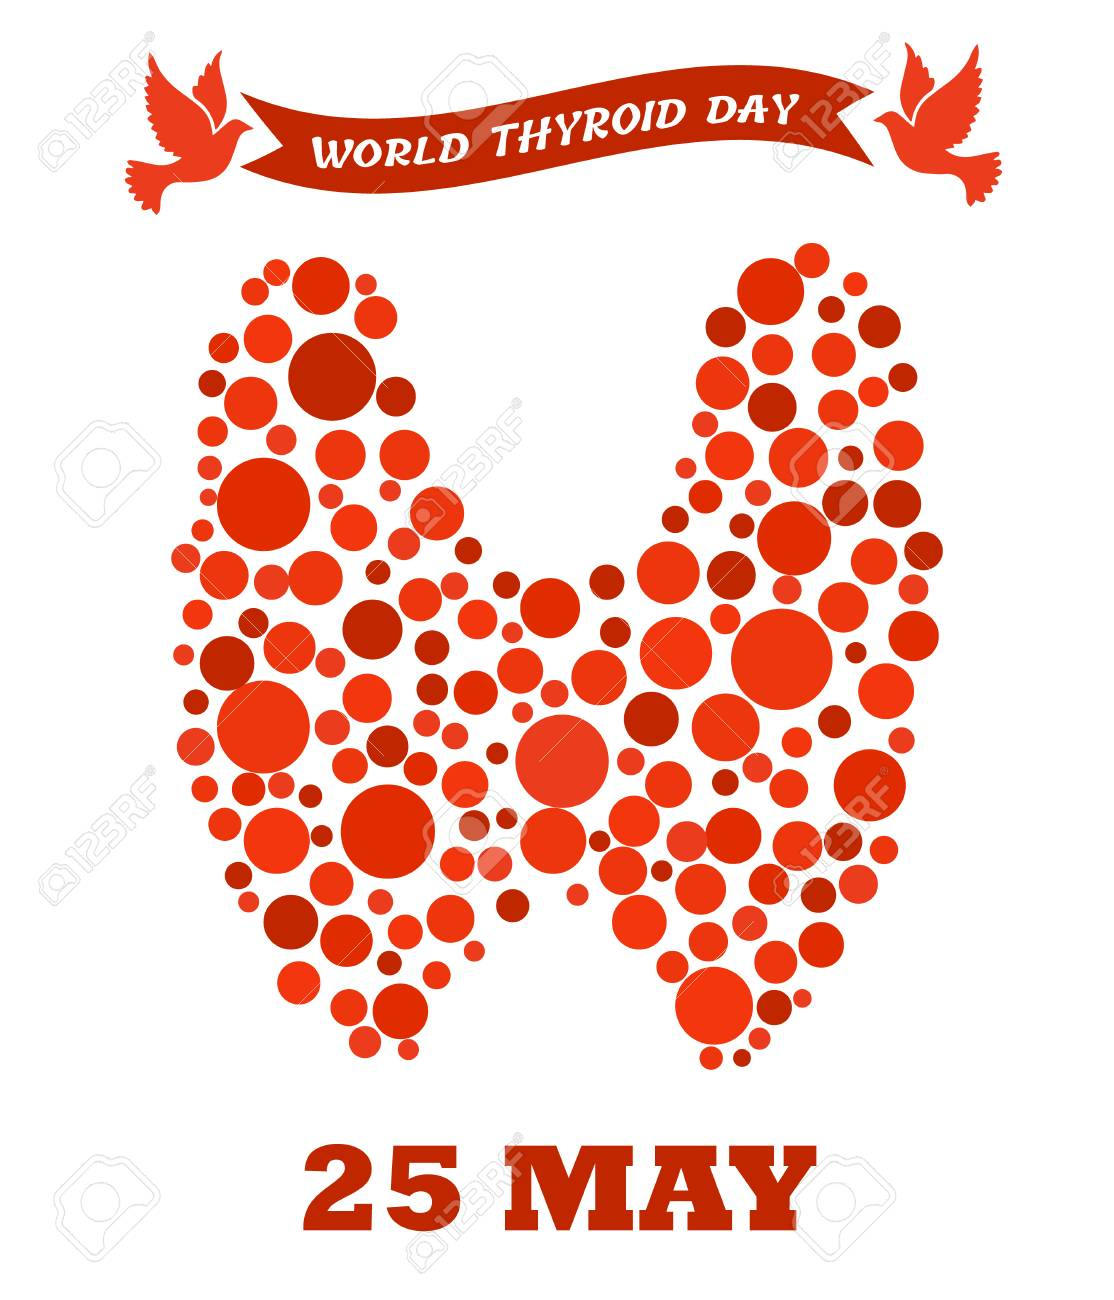 World Thyroid Day Poster Human Thyroid Disease Awareness Thyroid